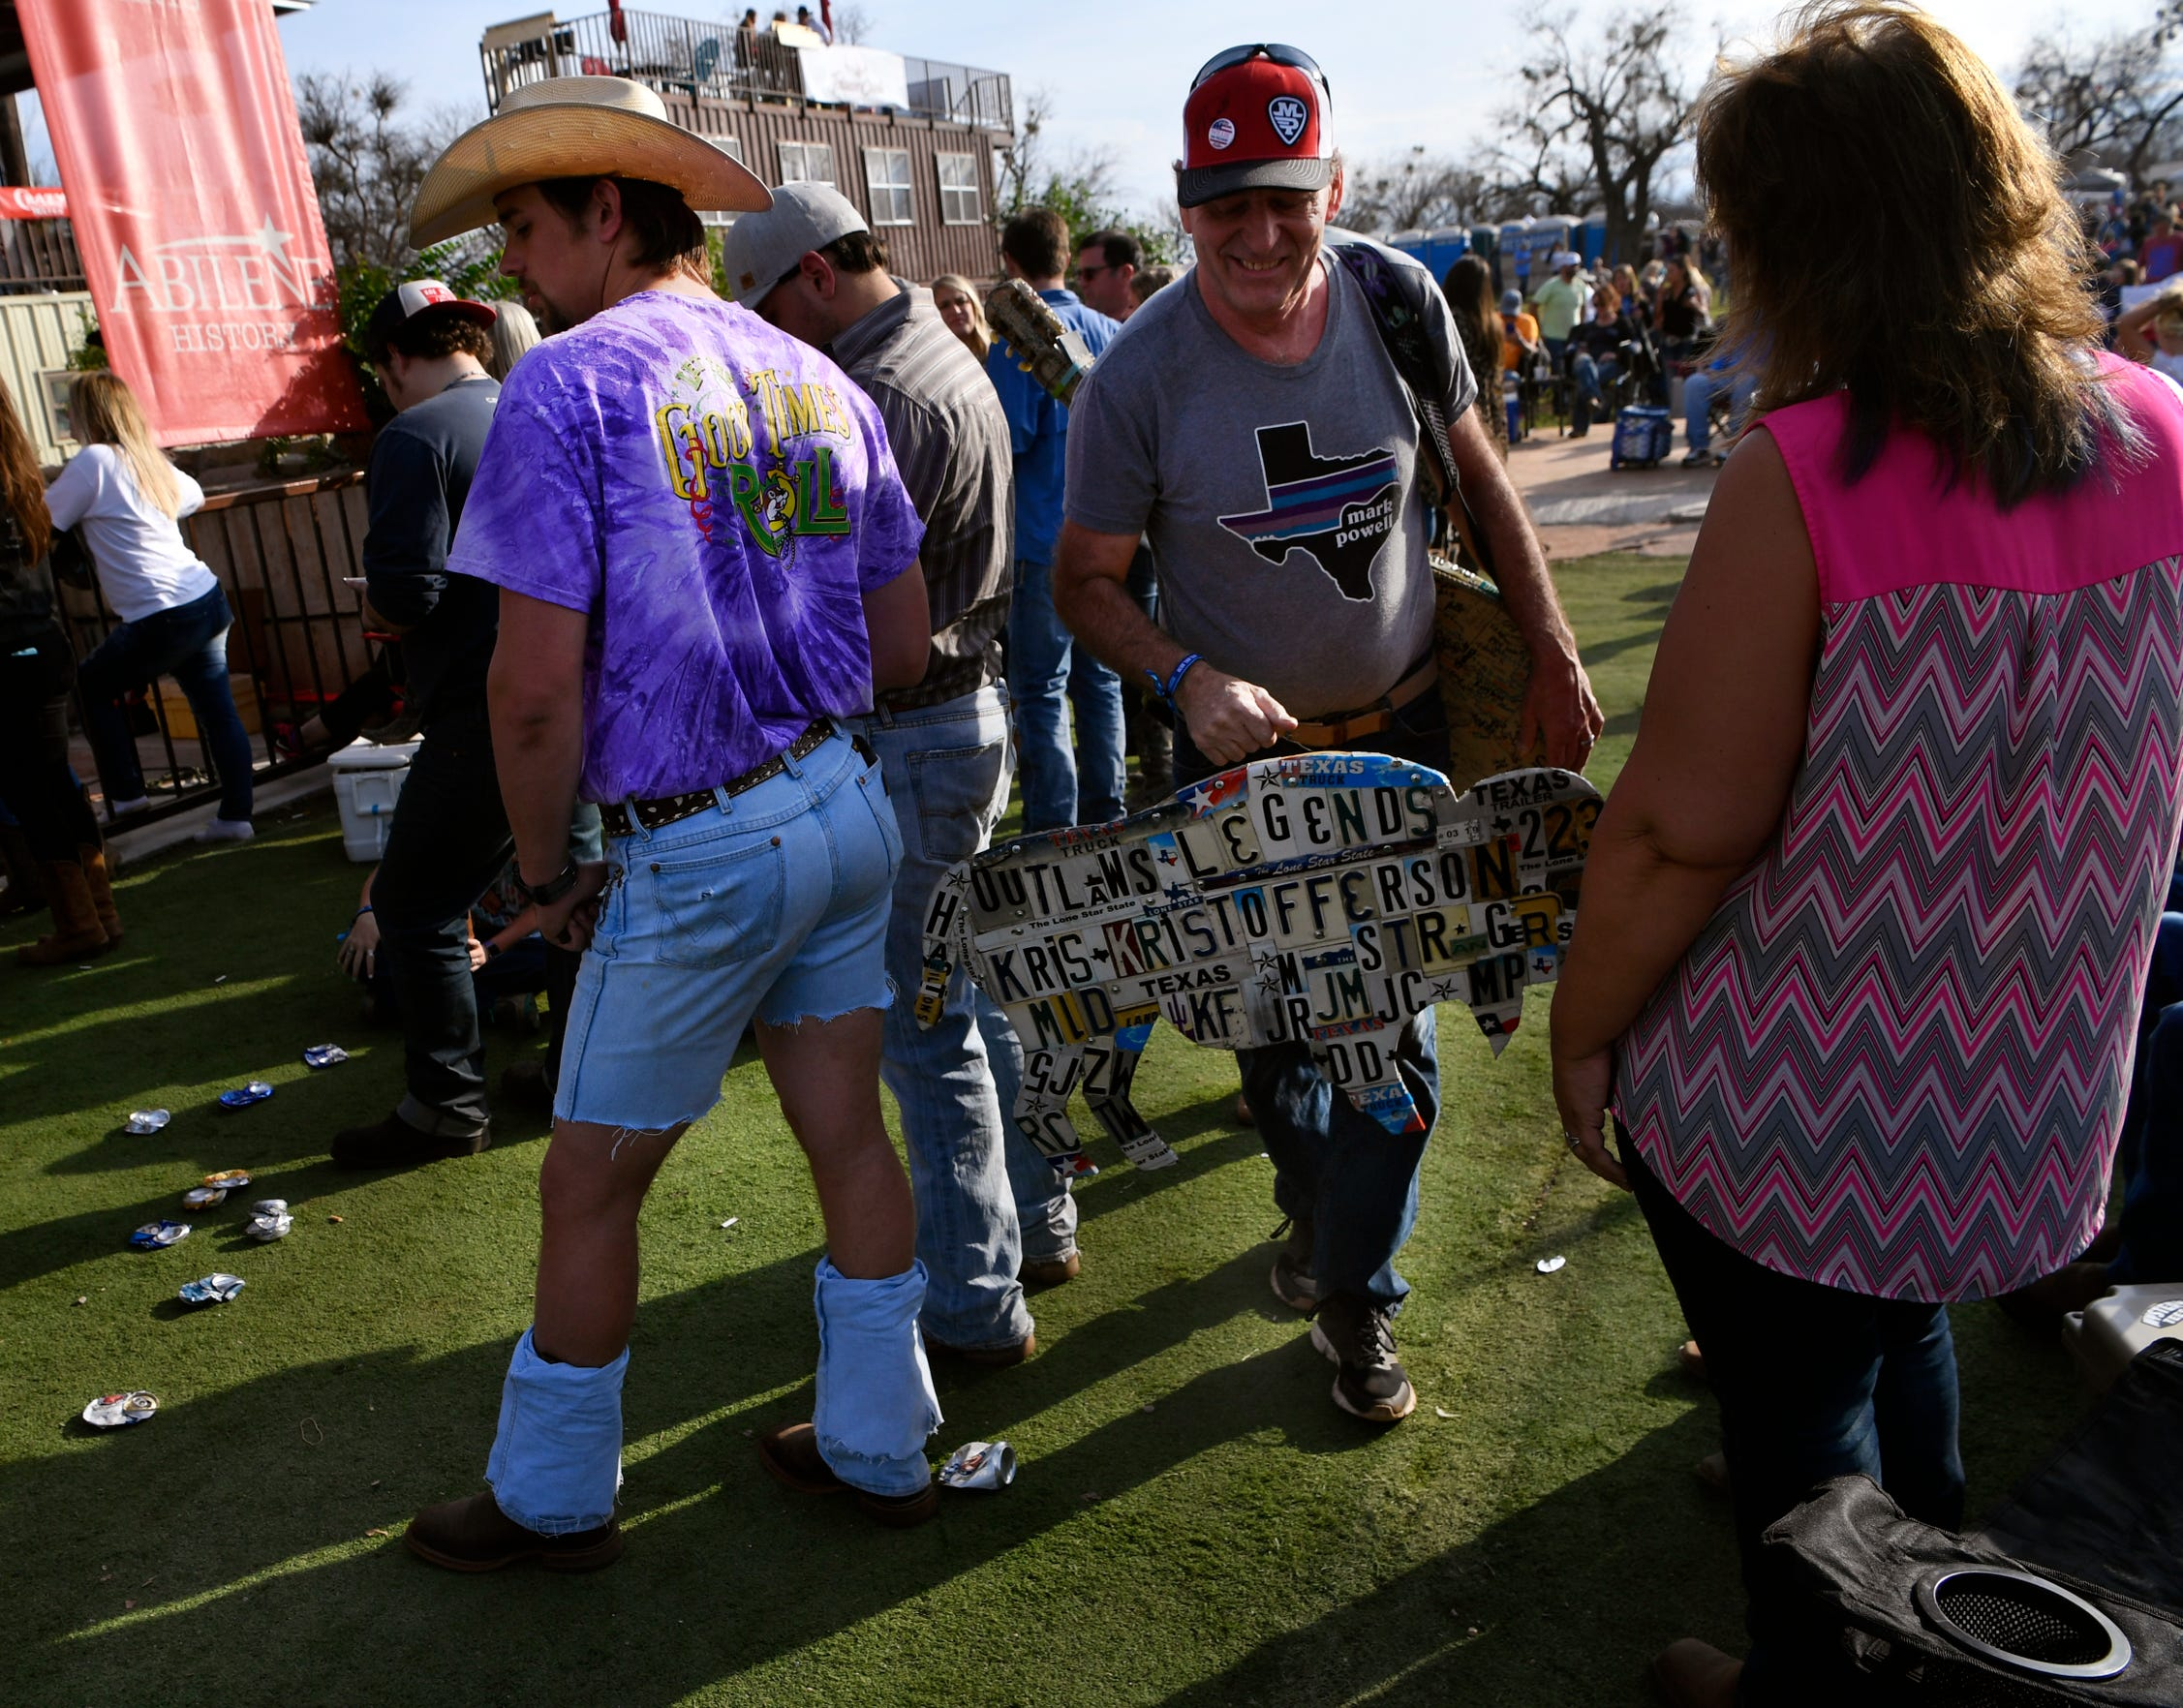 Dennis Gross carries his custom artwork made for the festival made through the crowd at the Outlaws & Legends music festival in 2019. Gross cut a buffalo shape in wood and then used old license plates to spell the names of this year's performers.